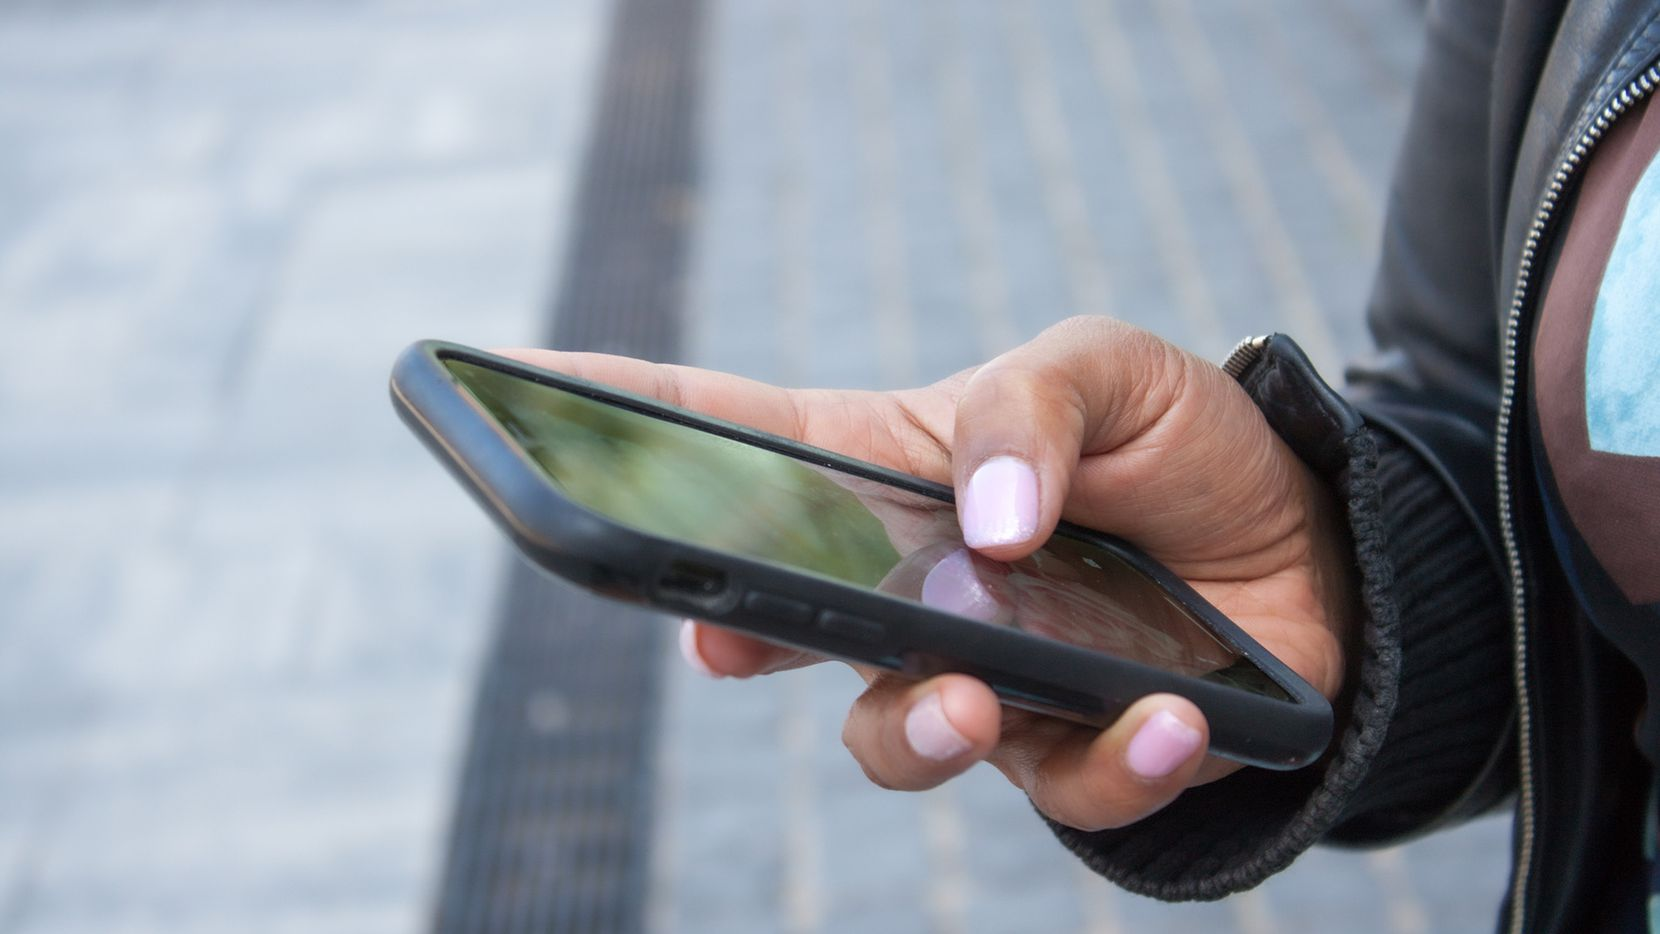 You can now text Arlington to report issues or ask questions. (Dreamstime/TNS)